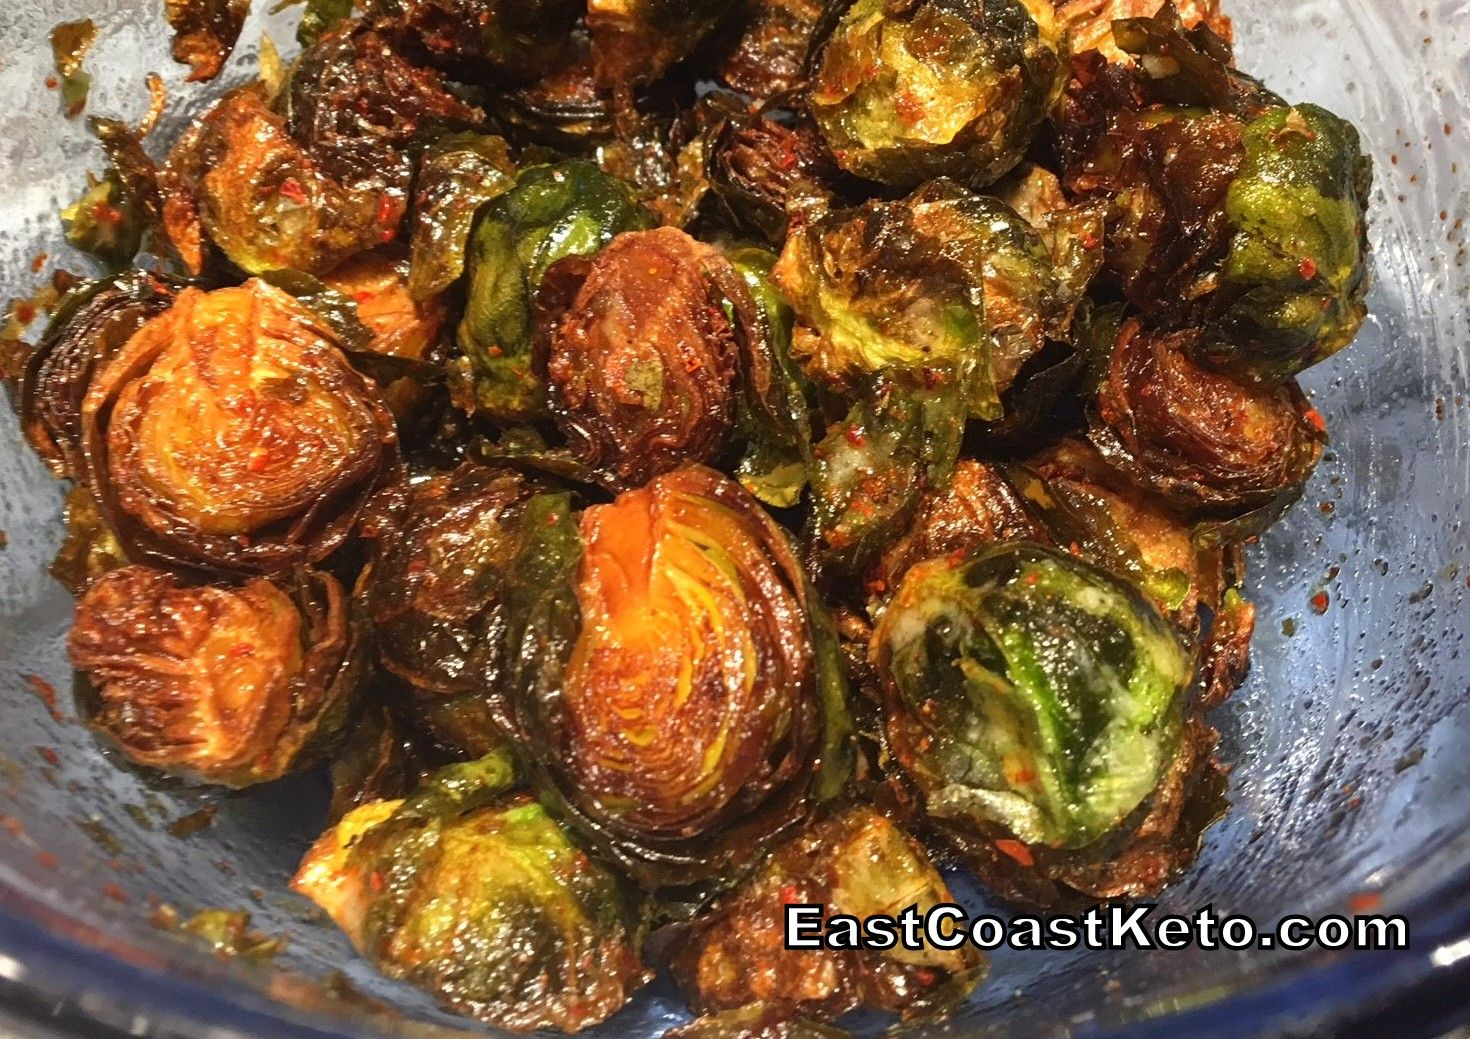 Deep Fried Brussels Sprouts Recipe Sprout Recipes Fried Brussel Sprouts Brussel Sprouts